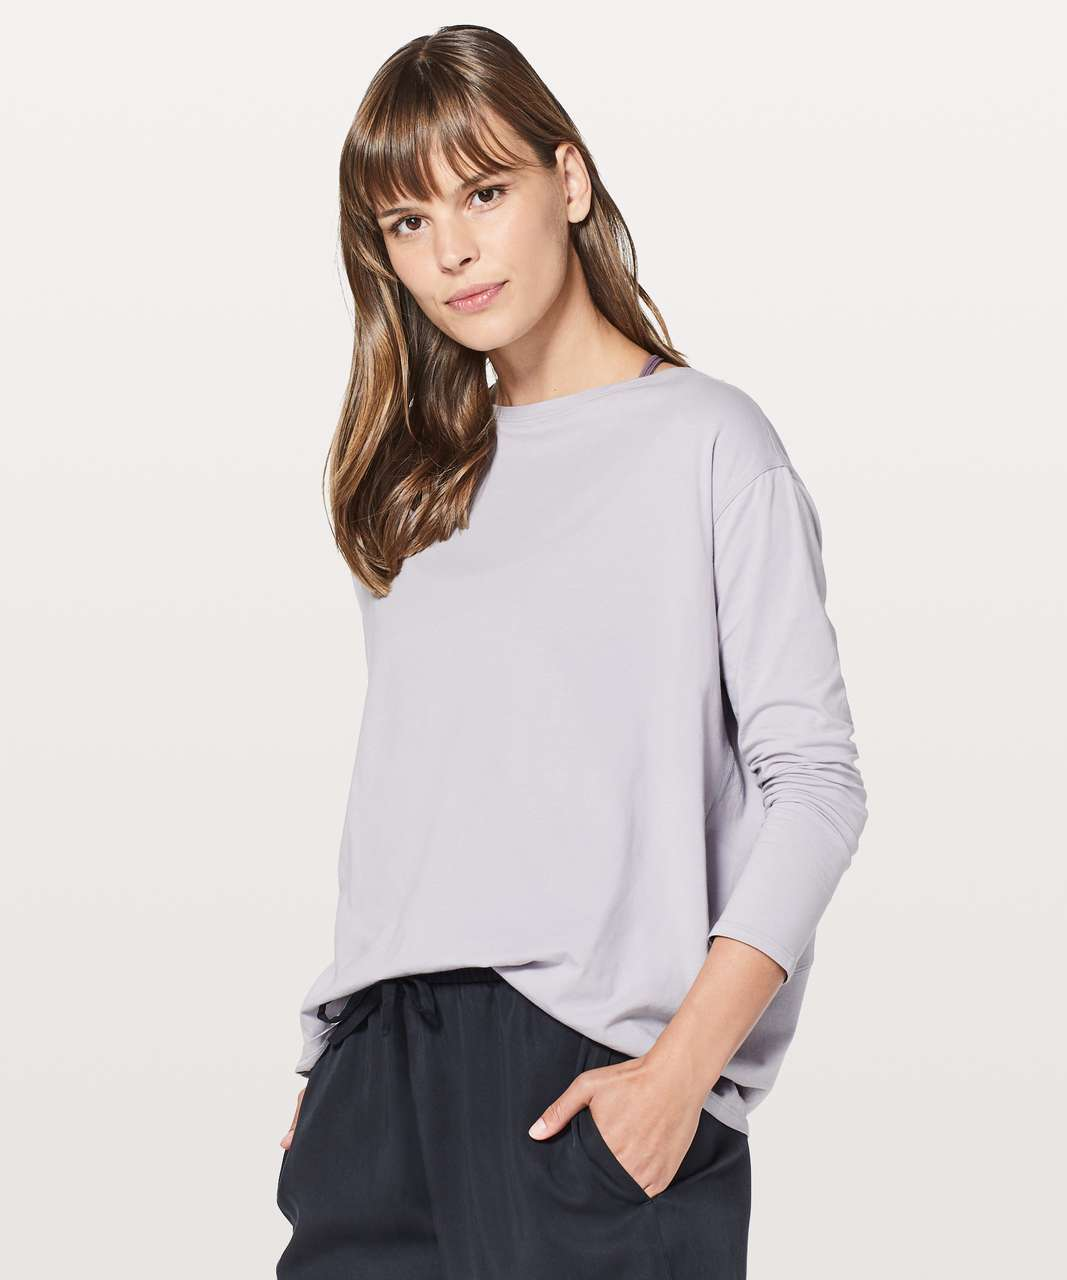 Lululemon Back In Action Long Sleeve - Iced Iris